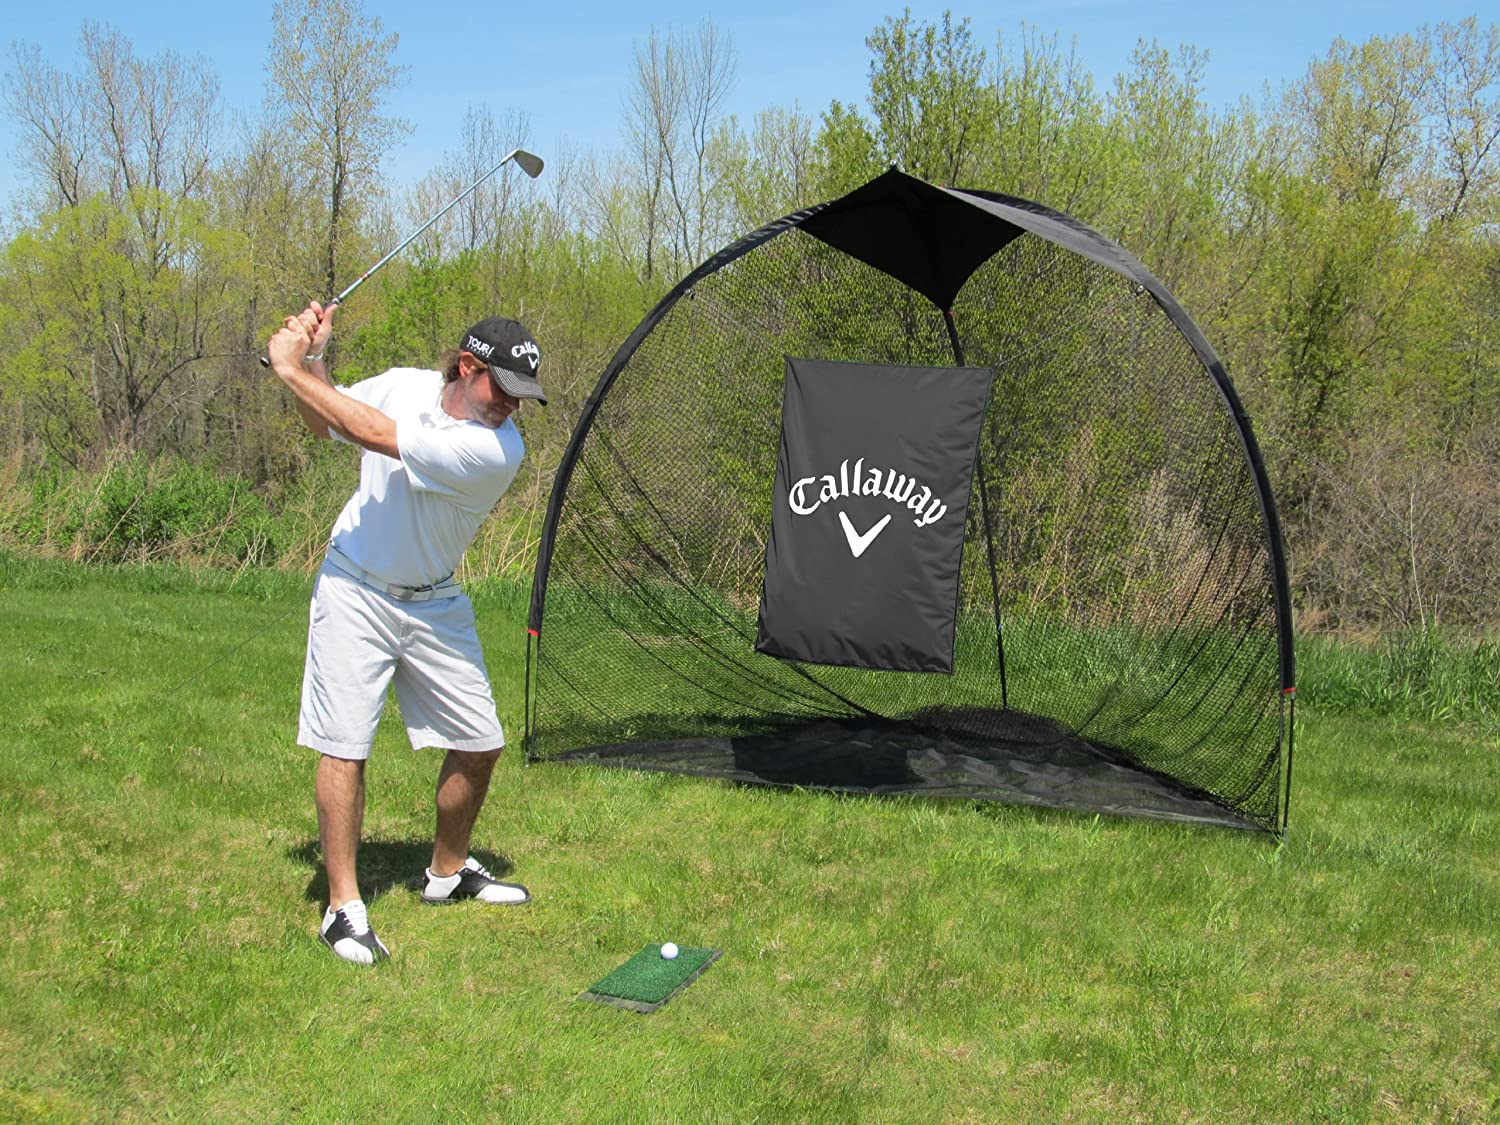 Amazon.com : Callaway Tri-Ball Hitting Net (7 X 8-Feet) : Golf ...